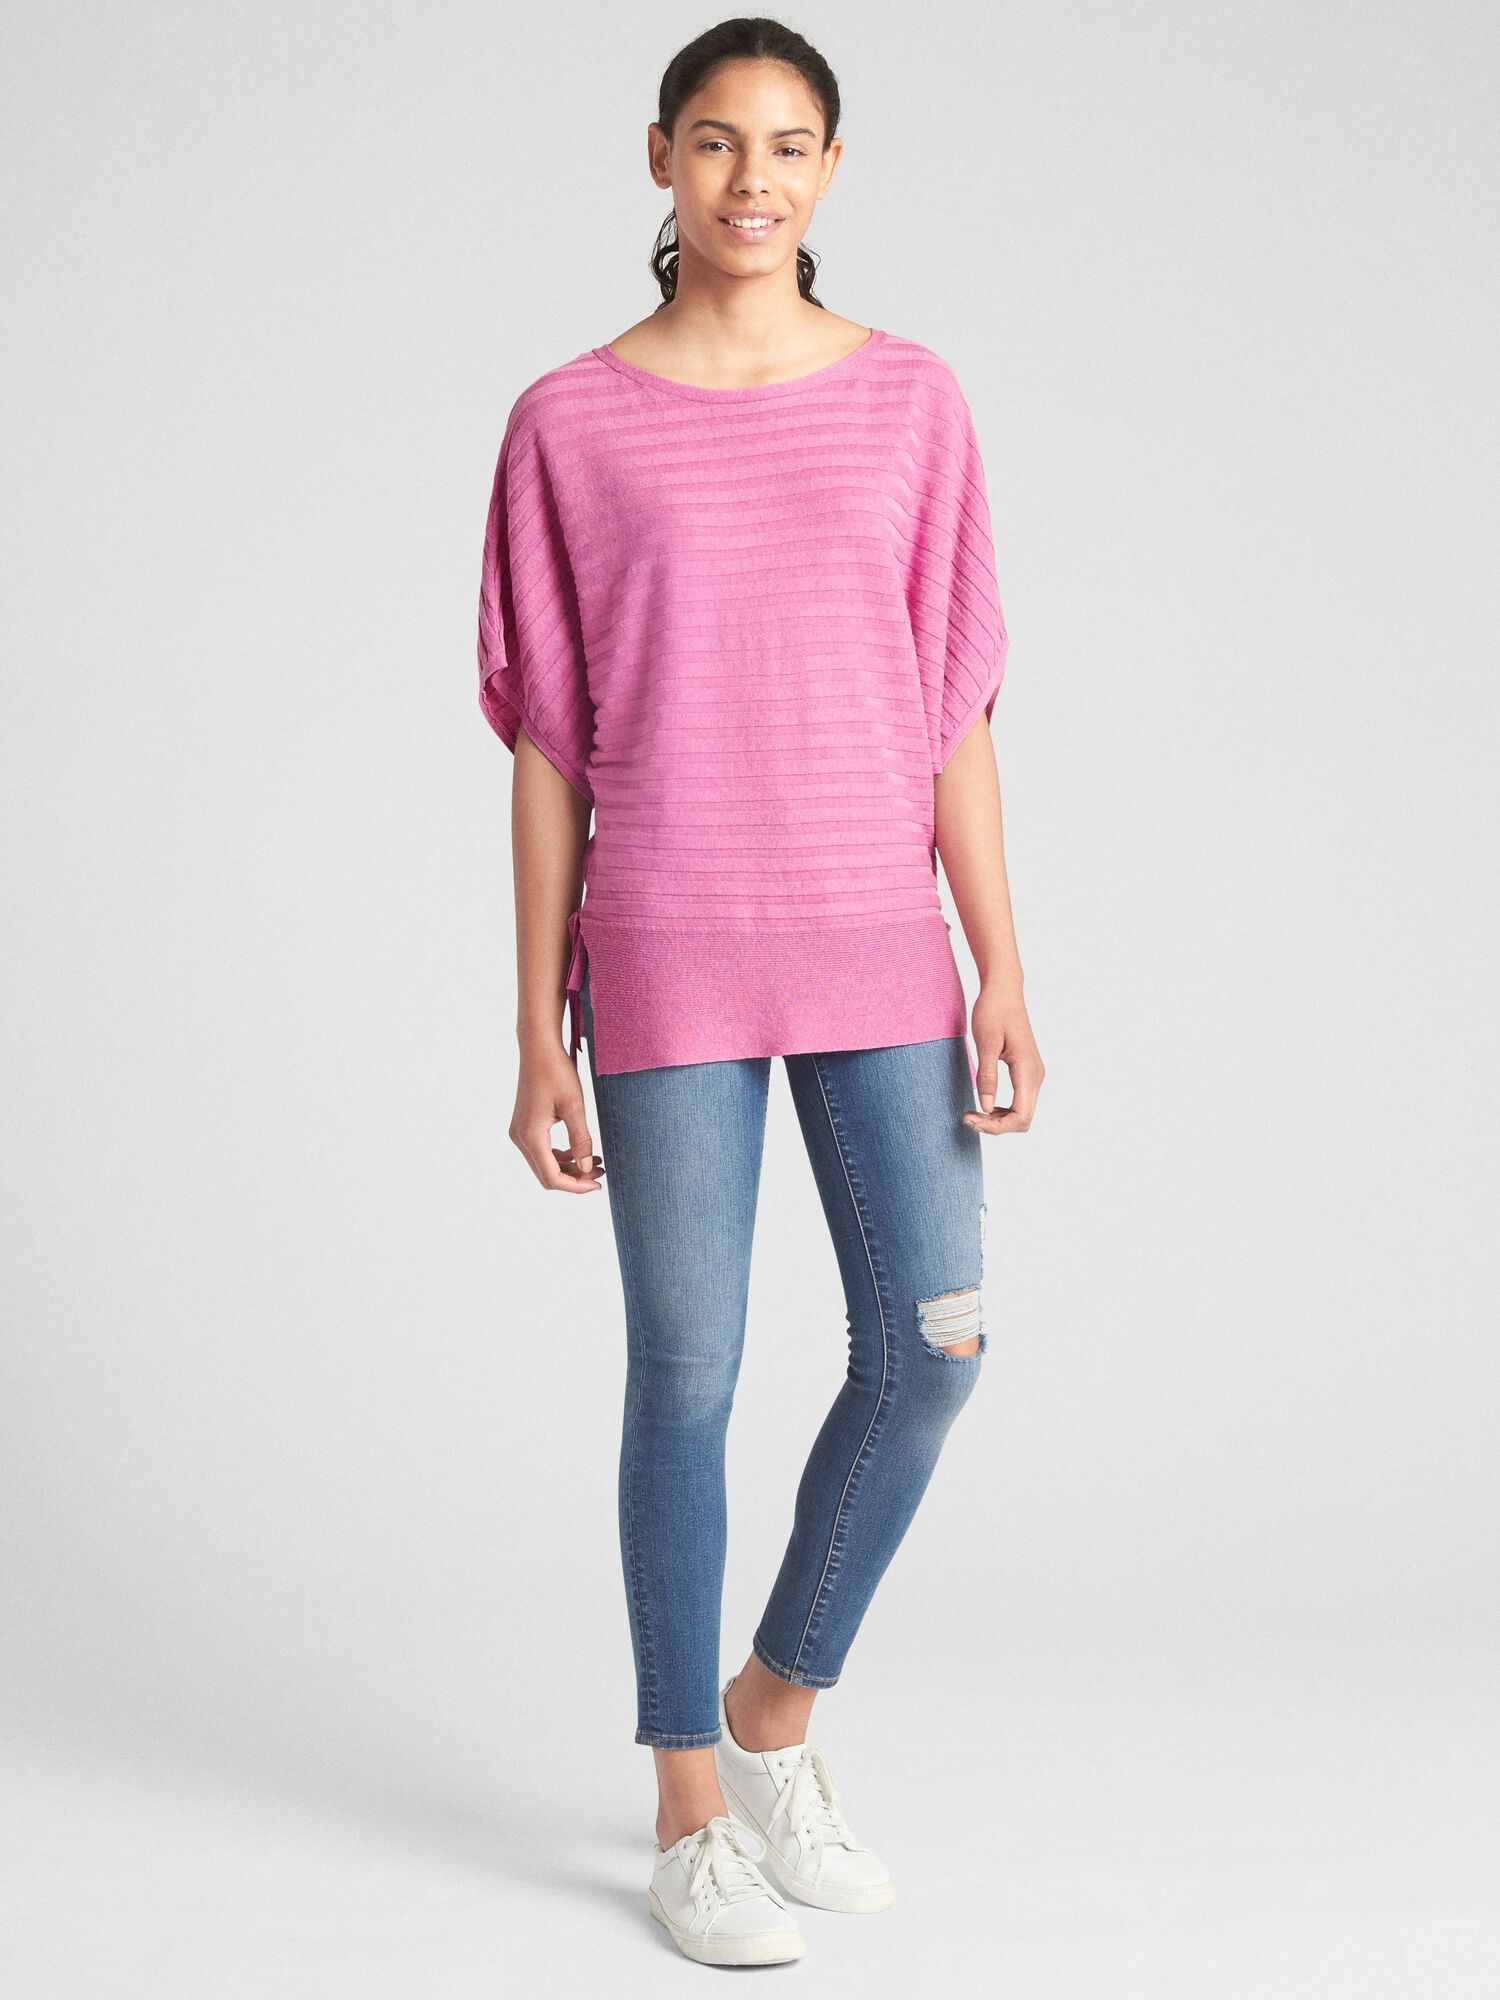 99dec8f6f Ribbed Short Sleeve Side-Tie Pullover Sweater